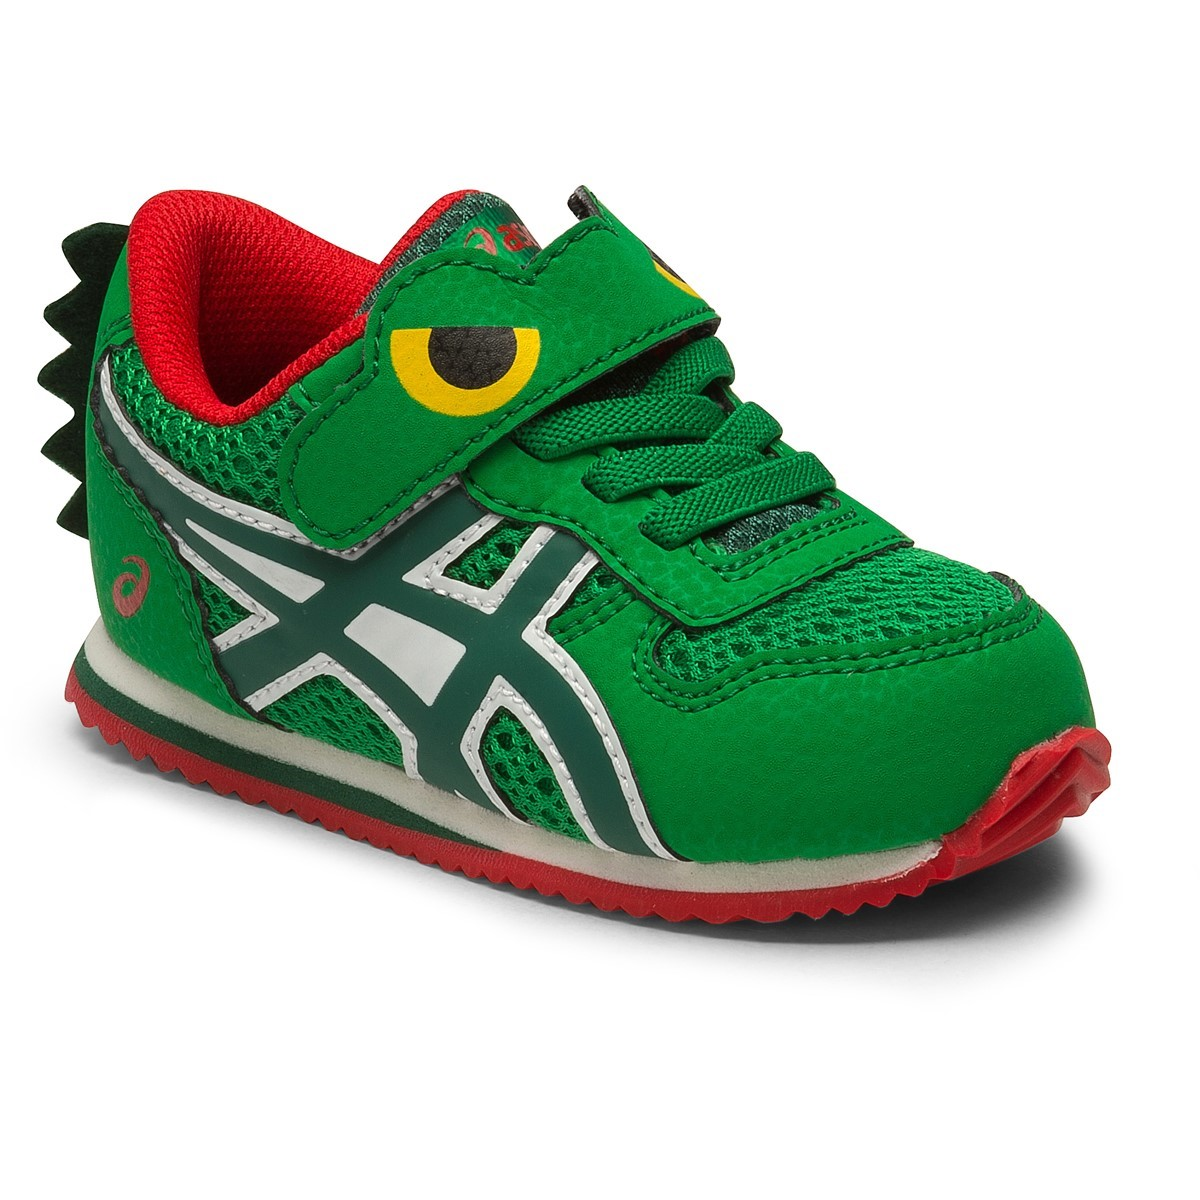 Asics Animal Pack - Toddler Boys Running Shoes - Crocodile